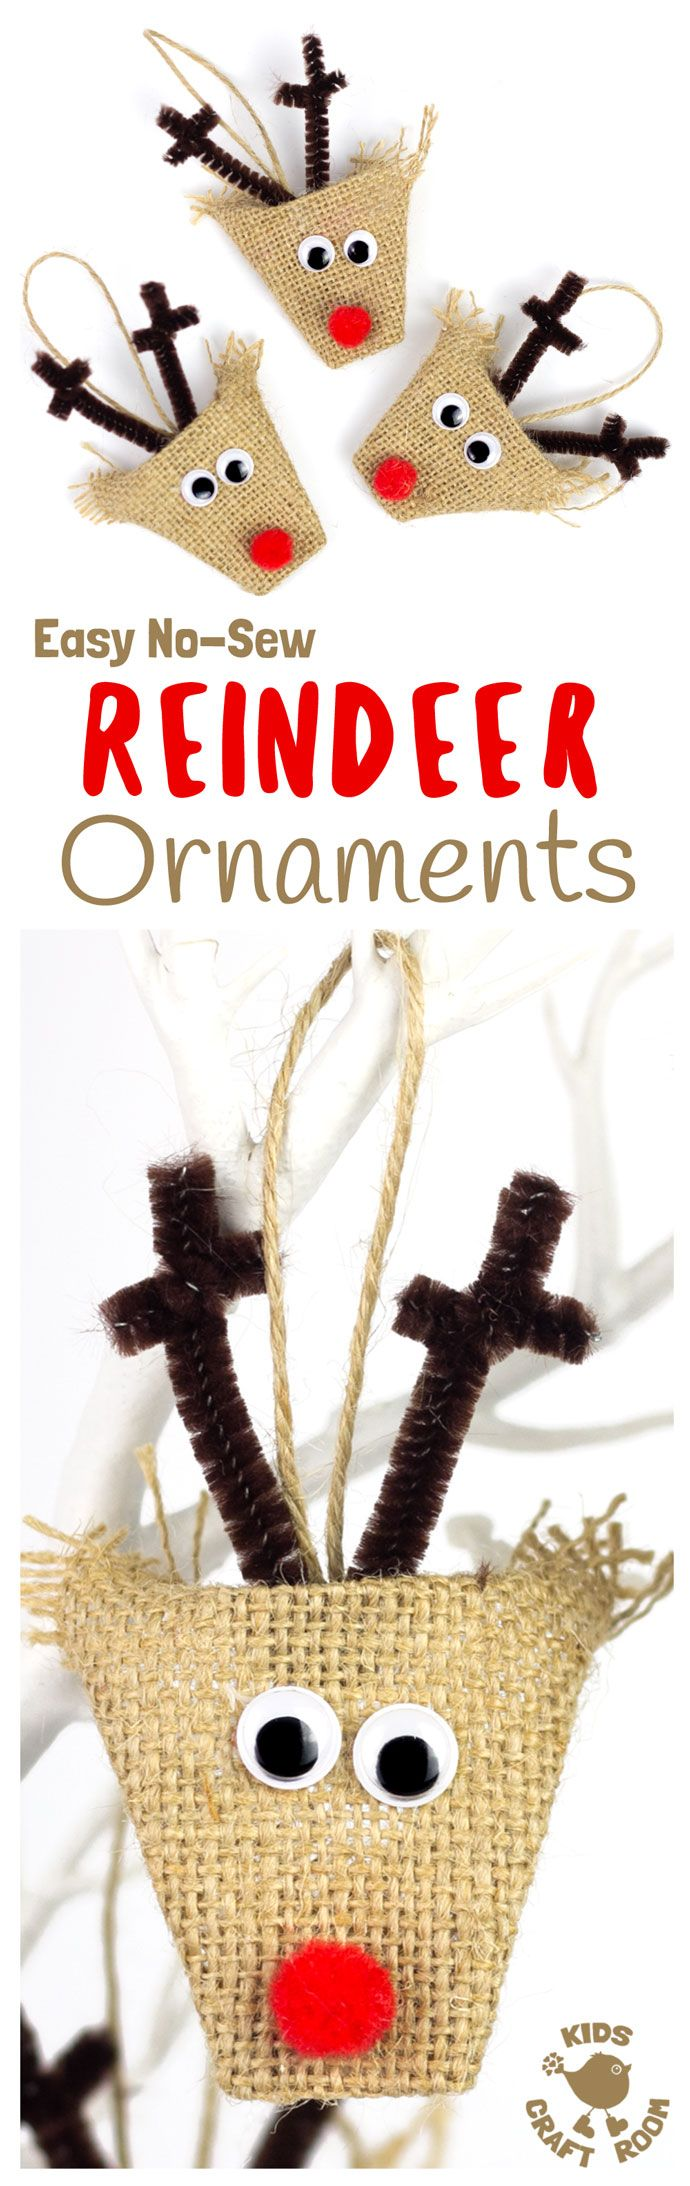 ADORABLE BURLAP REINDEER ORNAMENTS - a simple no-sew Christmas craft for kids. Homemade reindeer decorations look gorgeous on the Christmas tree or used as gift tags. Rustic burlap crafts are just perfect for Christmas. #Reindeer #ReindeerCrafts #Rudolf #RudolfCrafts #Christmas #ChristmasCrafts #ChristmasCraftsForKids #Burlap #BurlapCrafts #NoSewCrafts #Ornaments #ChristmasOrnaments #HomemadeOrnaments #DIYOrnaments #KidMadeChristmas #TreeDecorations via @KidsCraftRoom